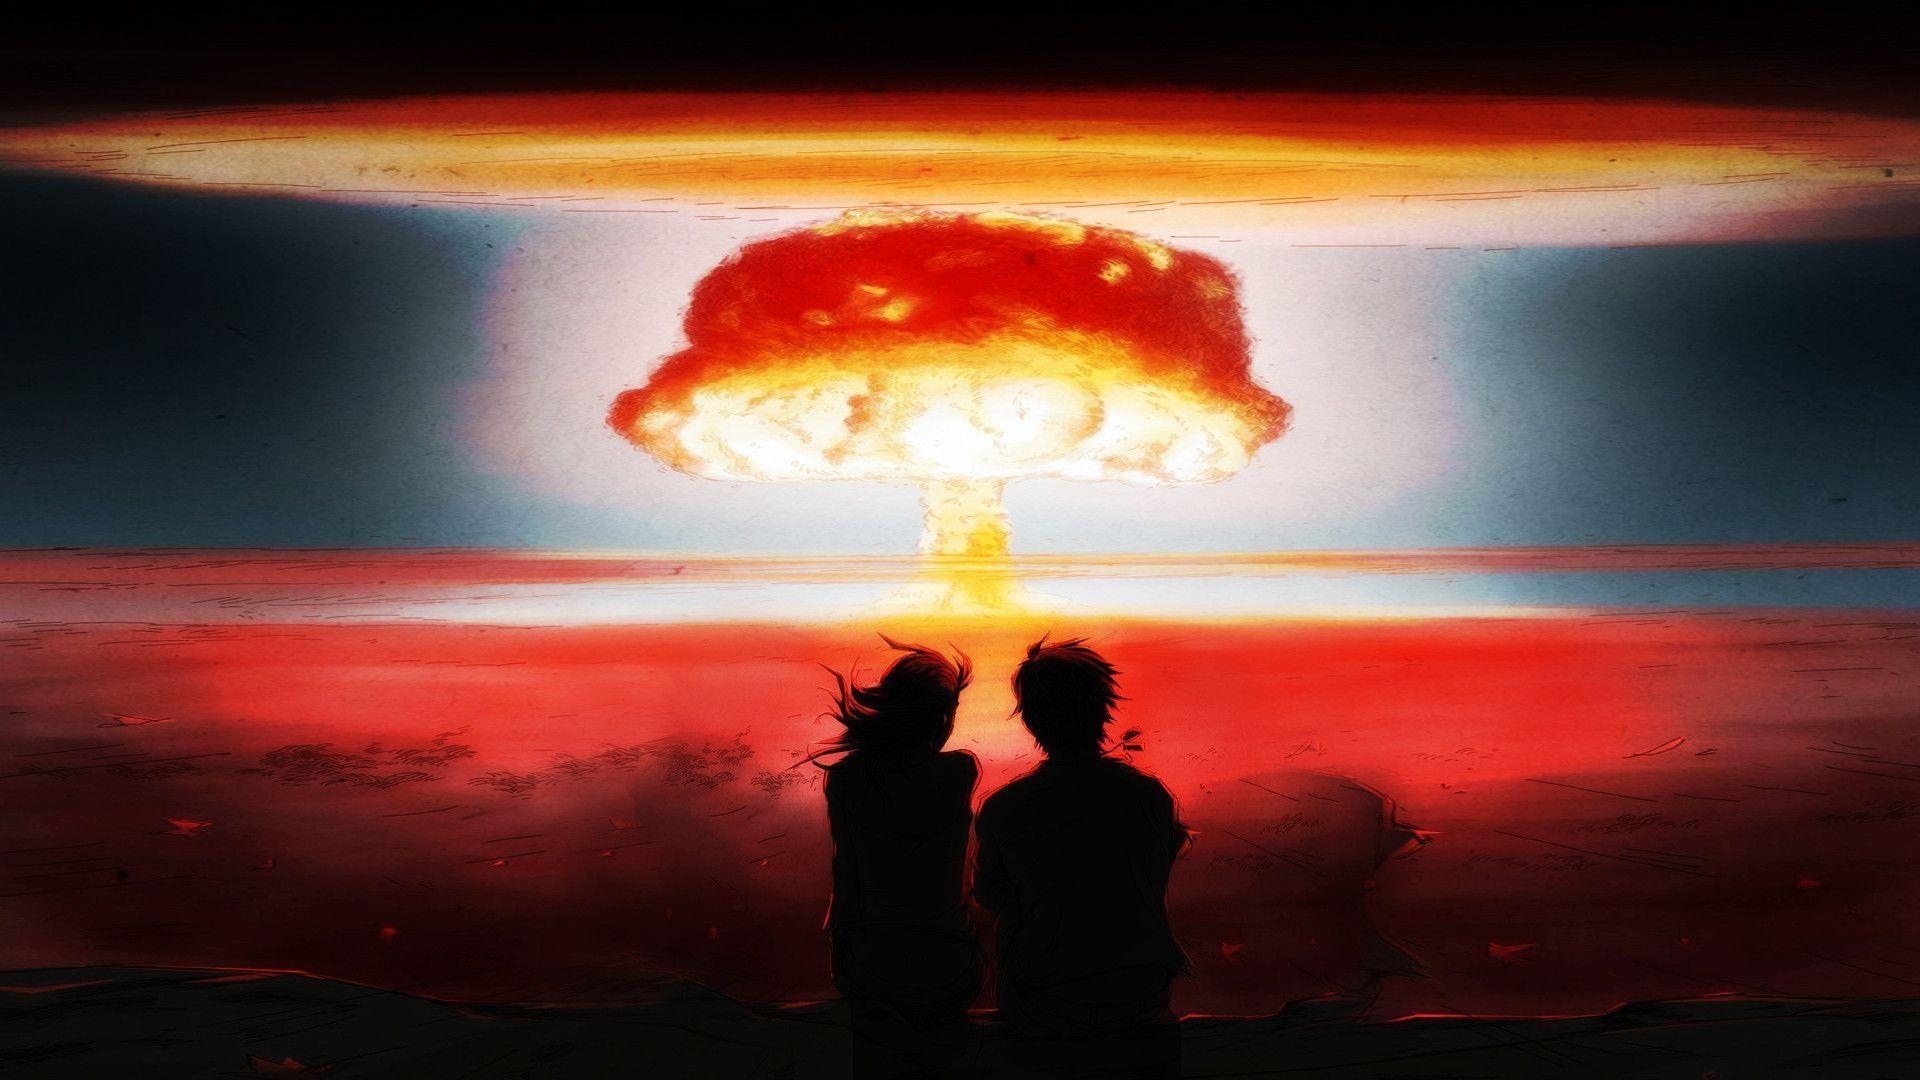 Pin Nuclear Explosion Mushroom Cloud 1920x1200 on Pinterest ...